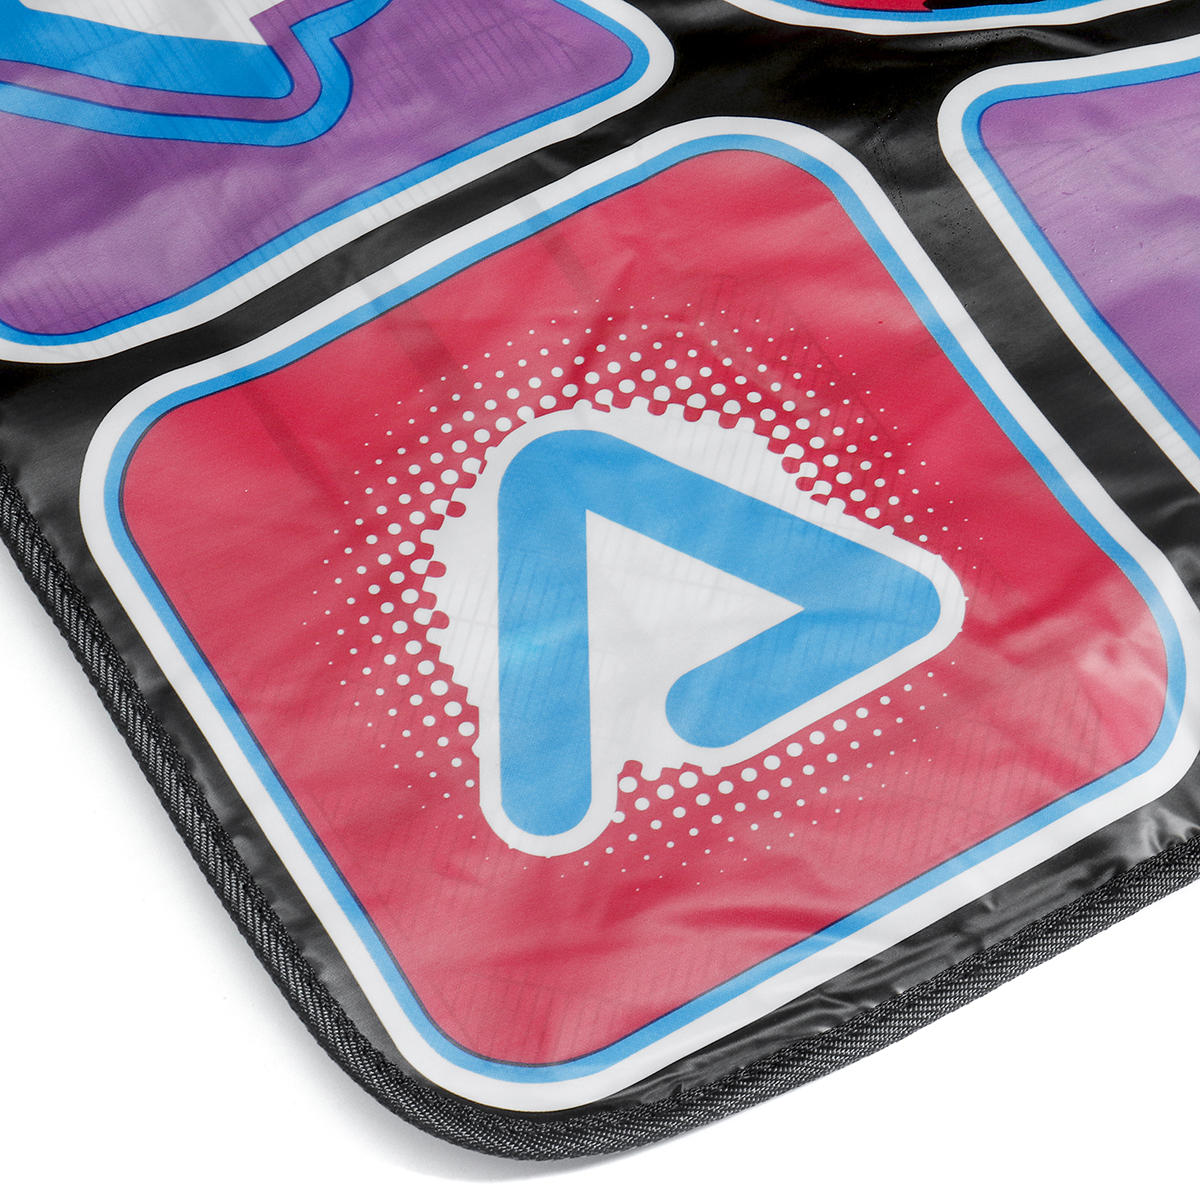 Non Slip Single Dance Pad Step Dancing Non slip Mats for PC Computer USB Game Sport Music - 5